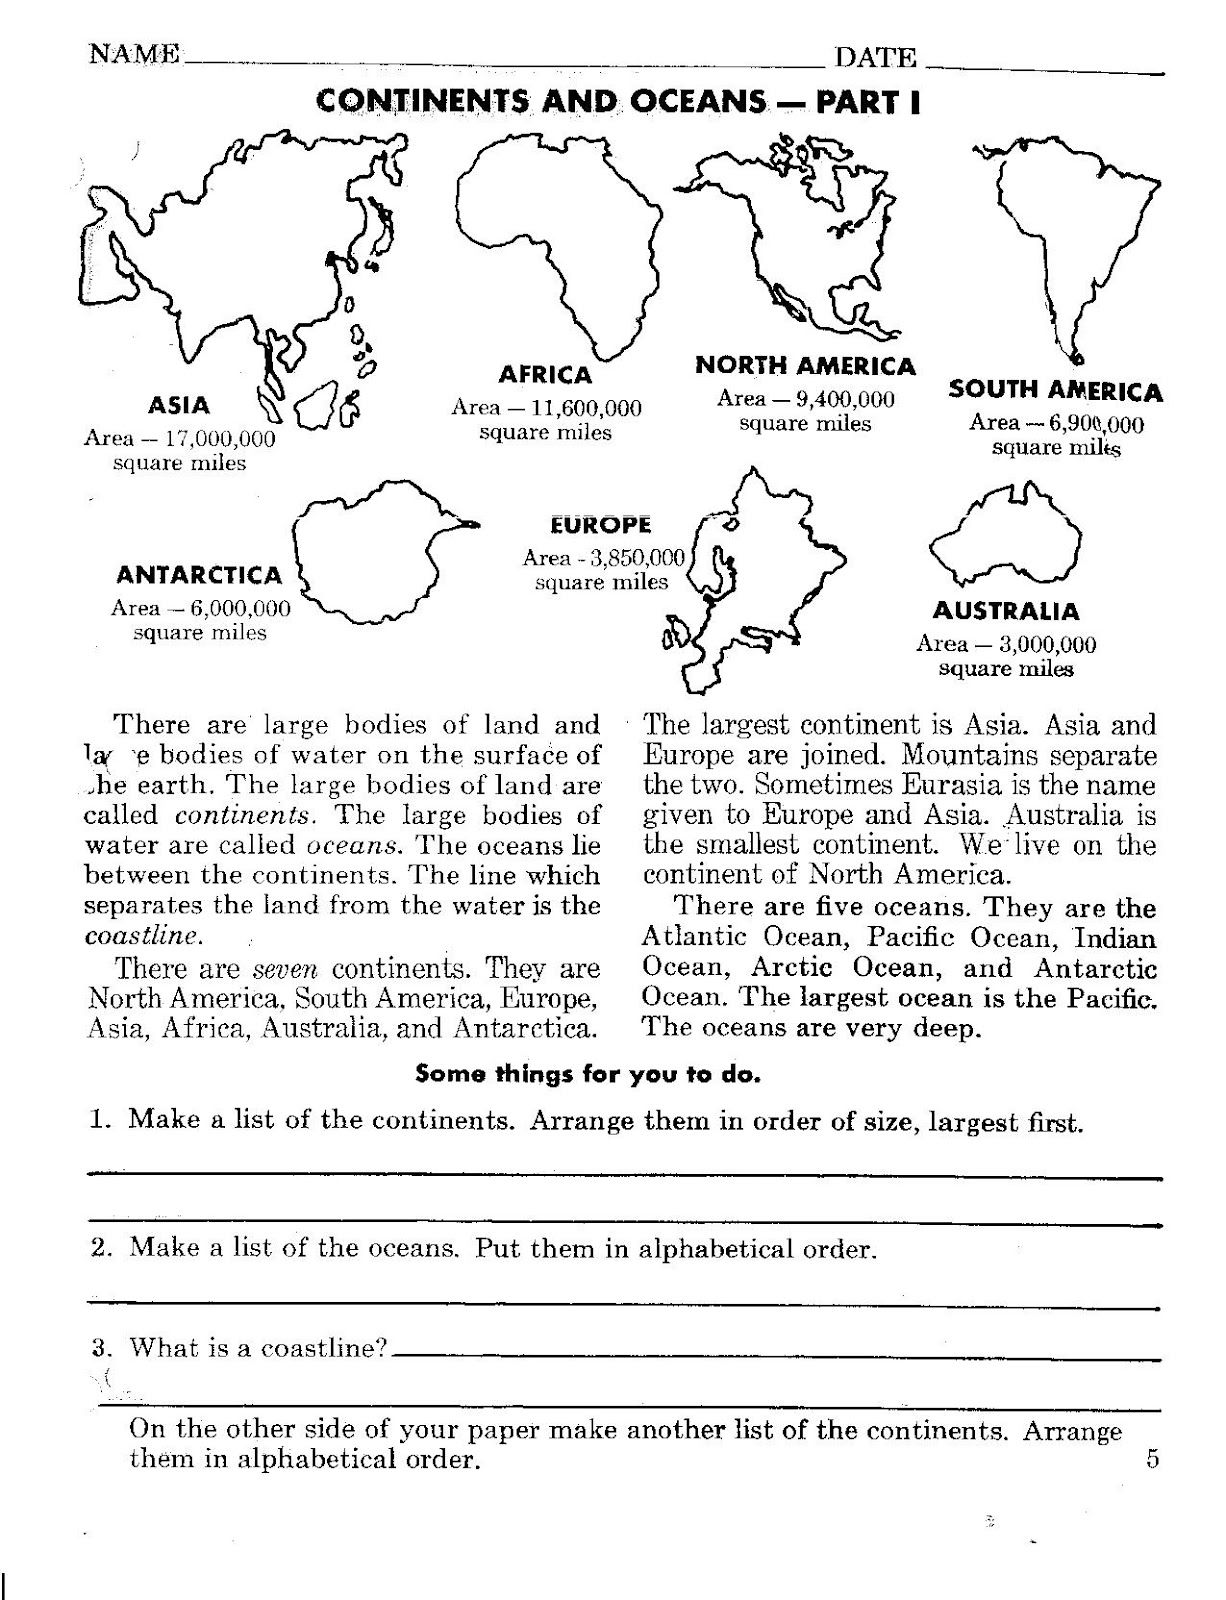 Worksheets Continents And Oceans Worksheet continents and oceans worksheets ogps earth science pinterest worksheets